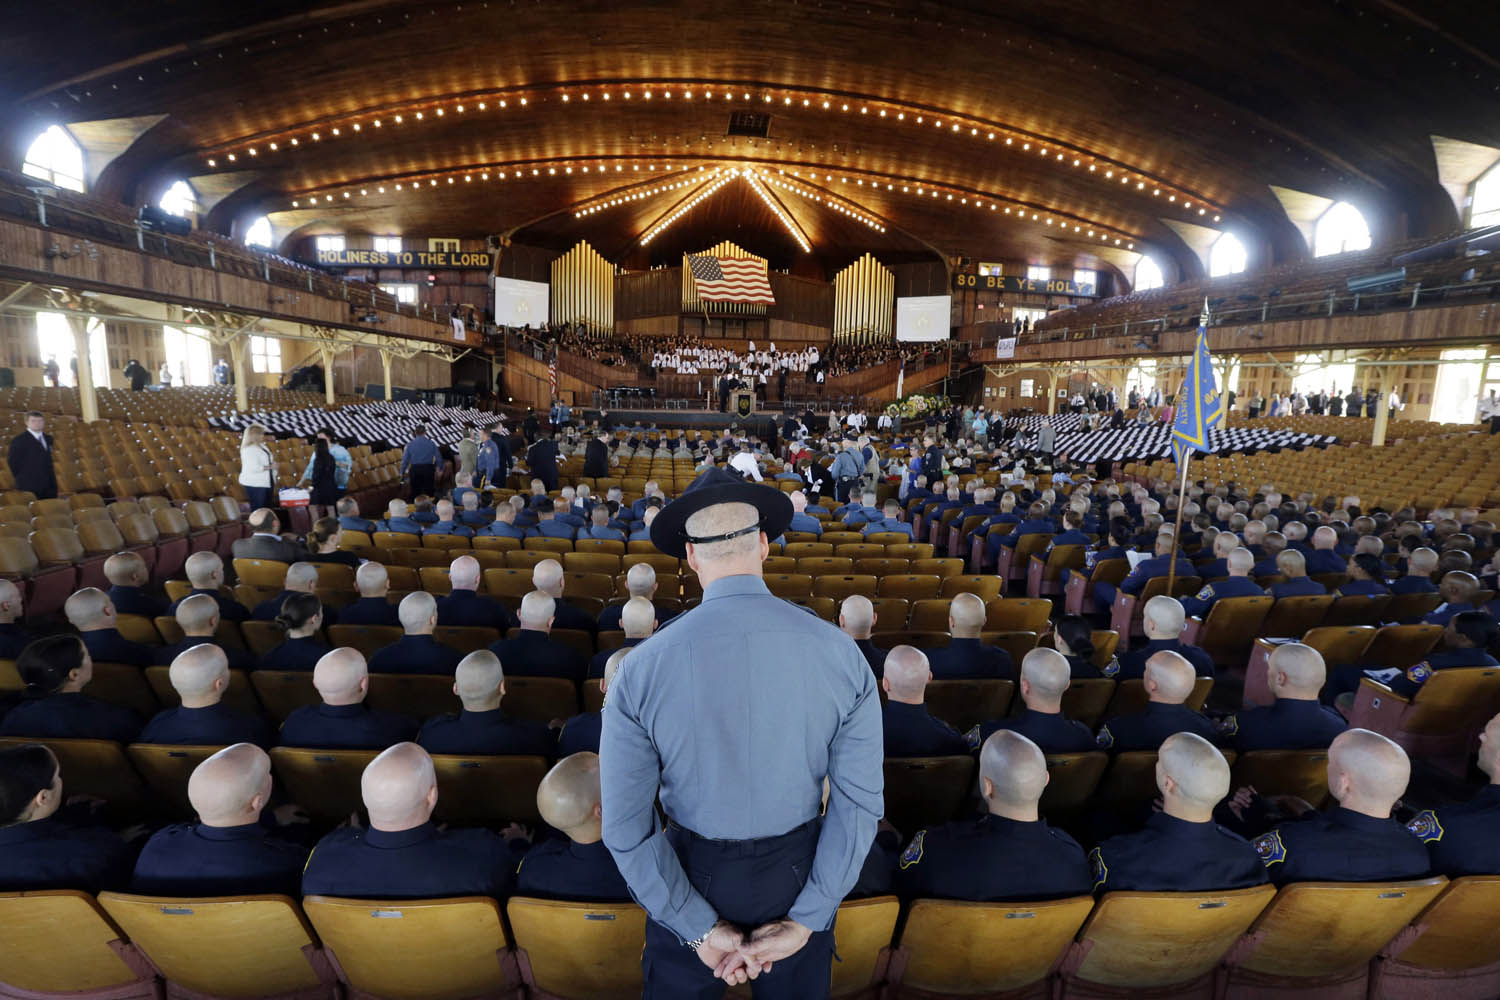 May 20, 2014. Police recruits from departments around New Jersey sit in the Ocean Grove Auditorium for the annual statewide law enforcement memorial service to remember those who lost their lives in the line of duty, in Neptune Township, N.J.